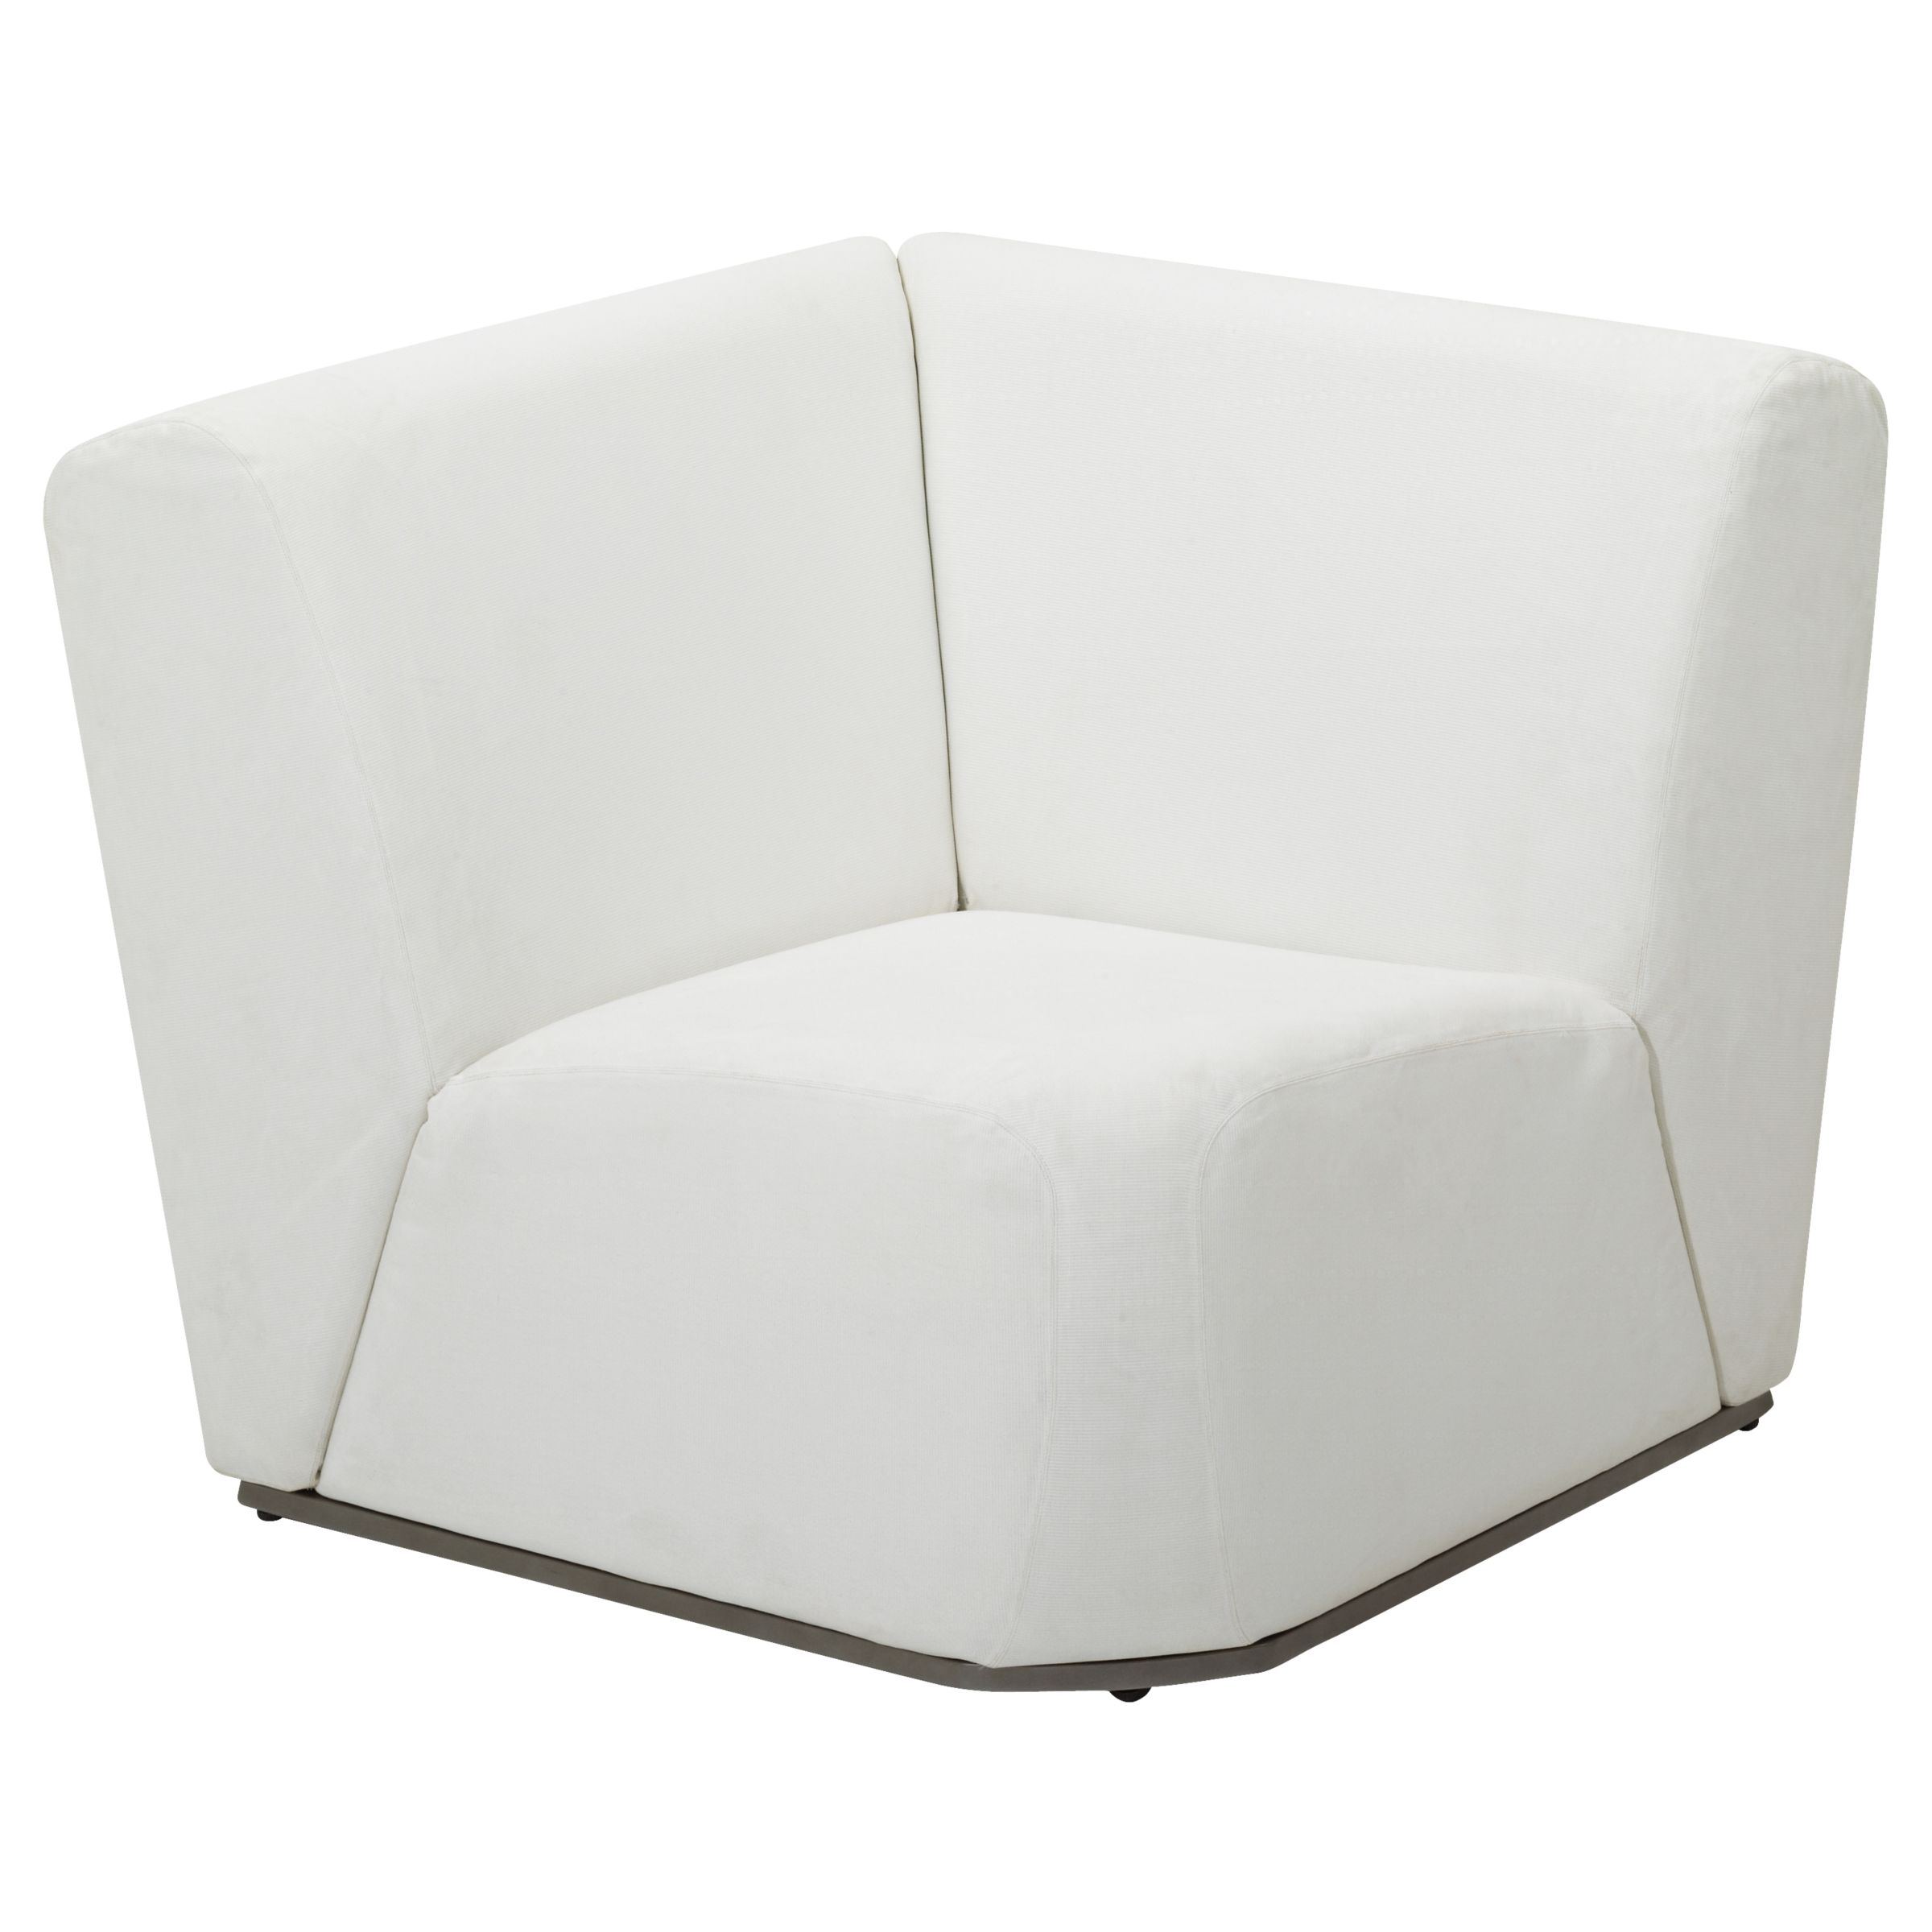 Gloster Club Outdoor Corner Unit, Ivory